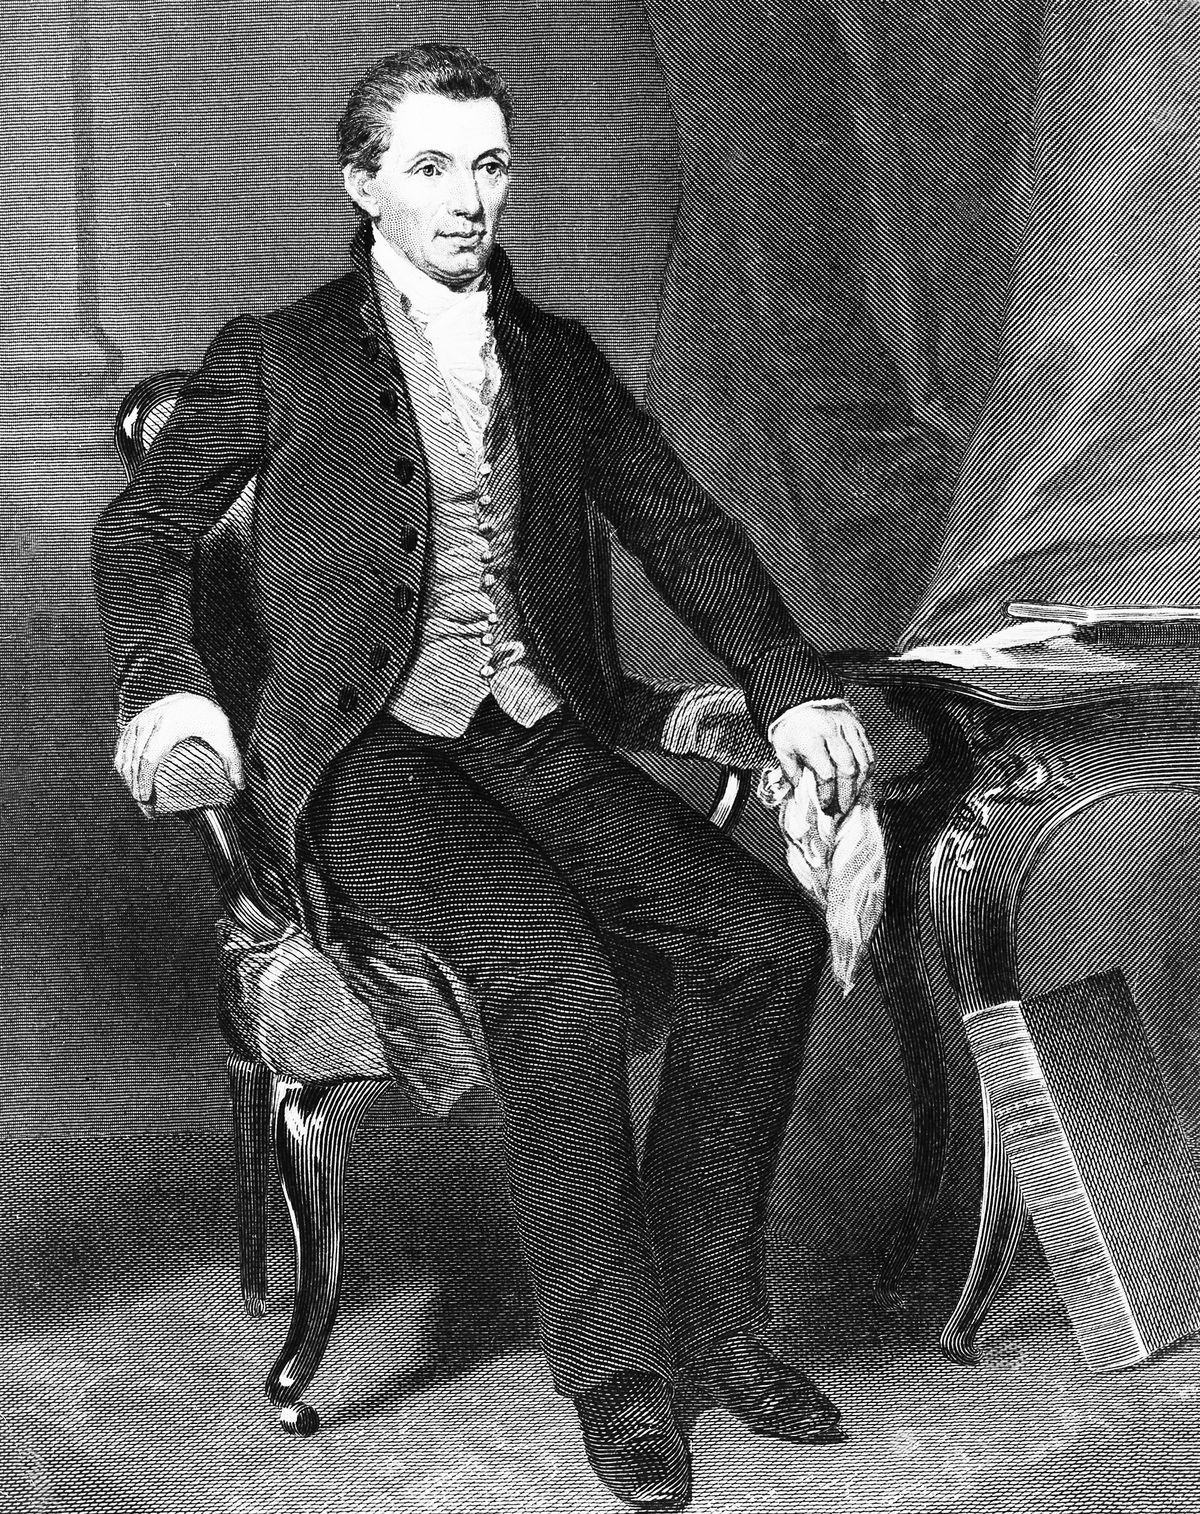 James Monroe wearing pants in another portrait.